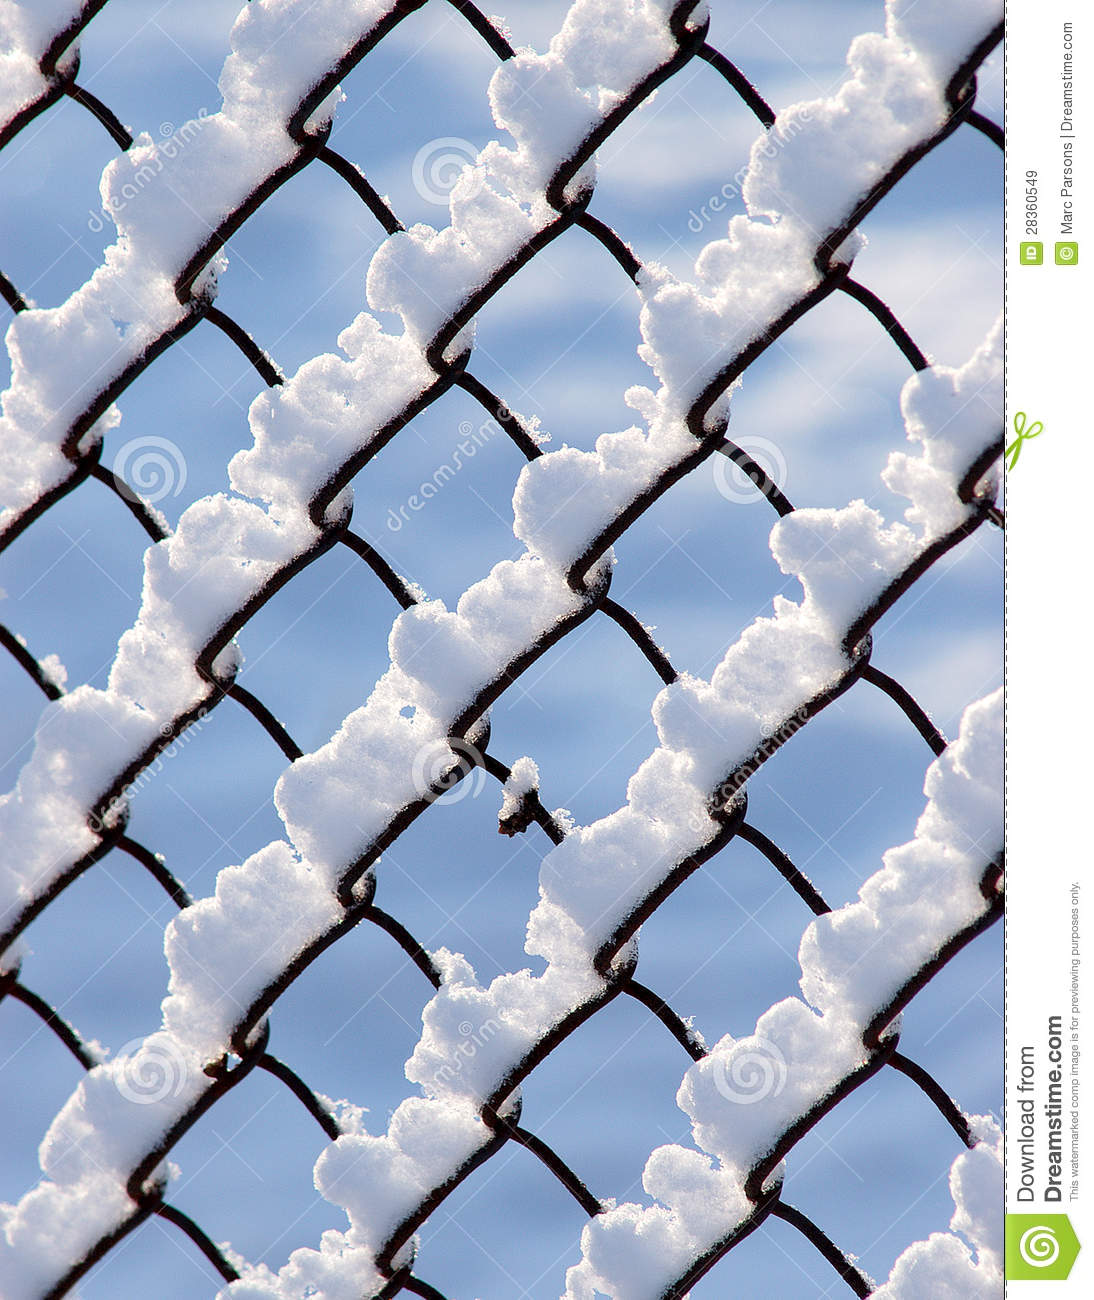 Chain link fencing covered by snow royalty free stock